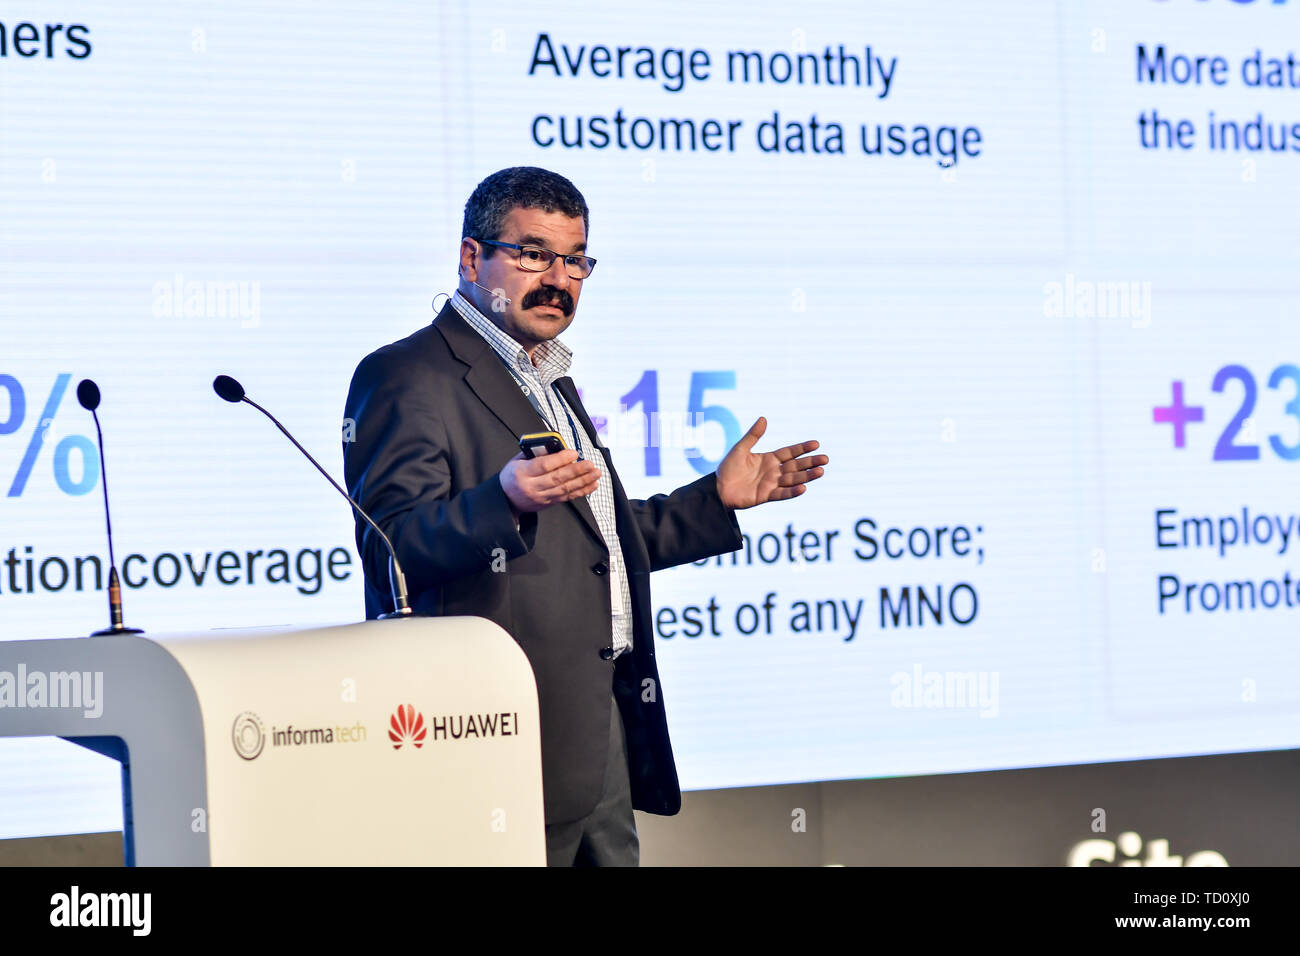 London, UK. 11th June, 2019. Speaker Dr Erol Hepsaydir at 5G World at Excel London, on 11 June 2019, UK. Credit: Picture Capital/Alamy Live News Stock Photo